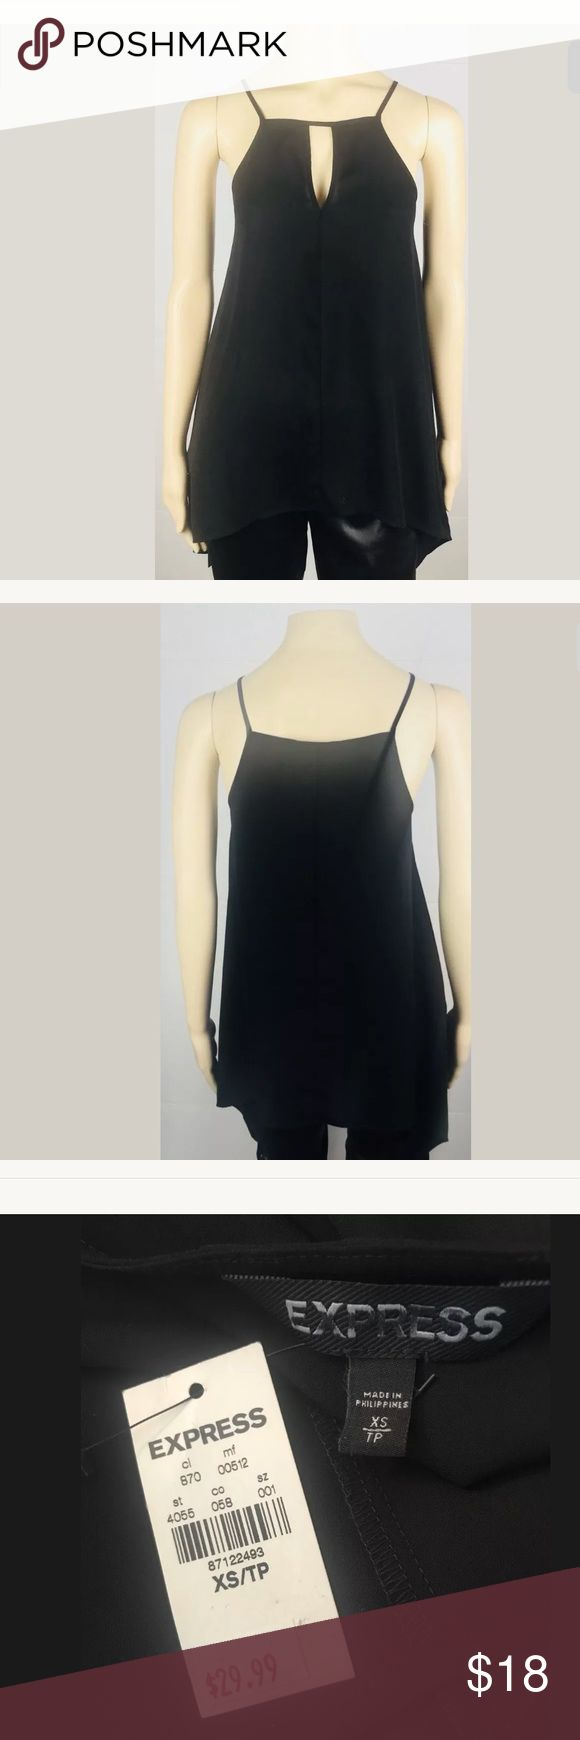 """New Express Sheer Top XS Black Item: New Express Top  Color: Black  Size: XS  Style: Sheer, longer on sides, splits on the sides  Armpit to armpit: 16""""  Sleeve length: Sleeveless  Shoulder to bottom front: 22"""" long in center from top to bottom, 30"""" long on sides from top to bottom  Material:x 100% Polyester  Condition: The Top is new with tags. Thank you for viewing this listing! Express Tops"""